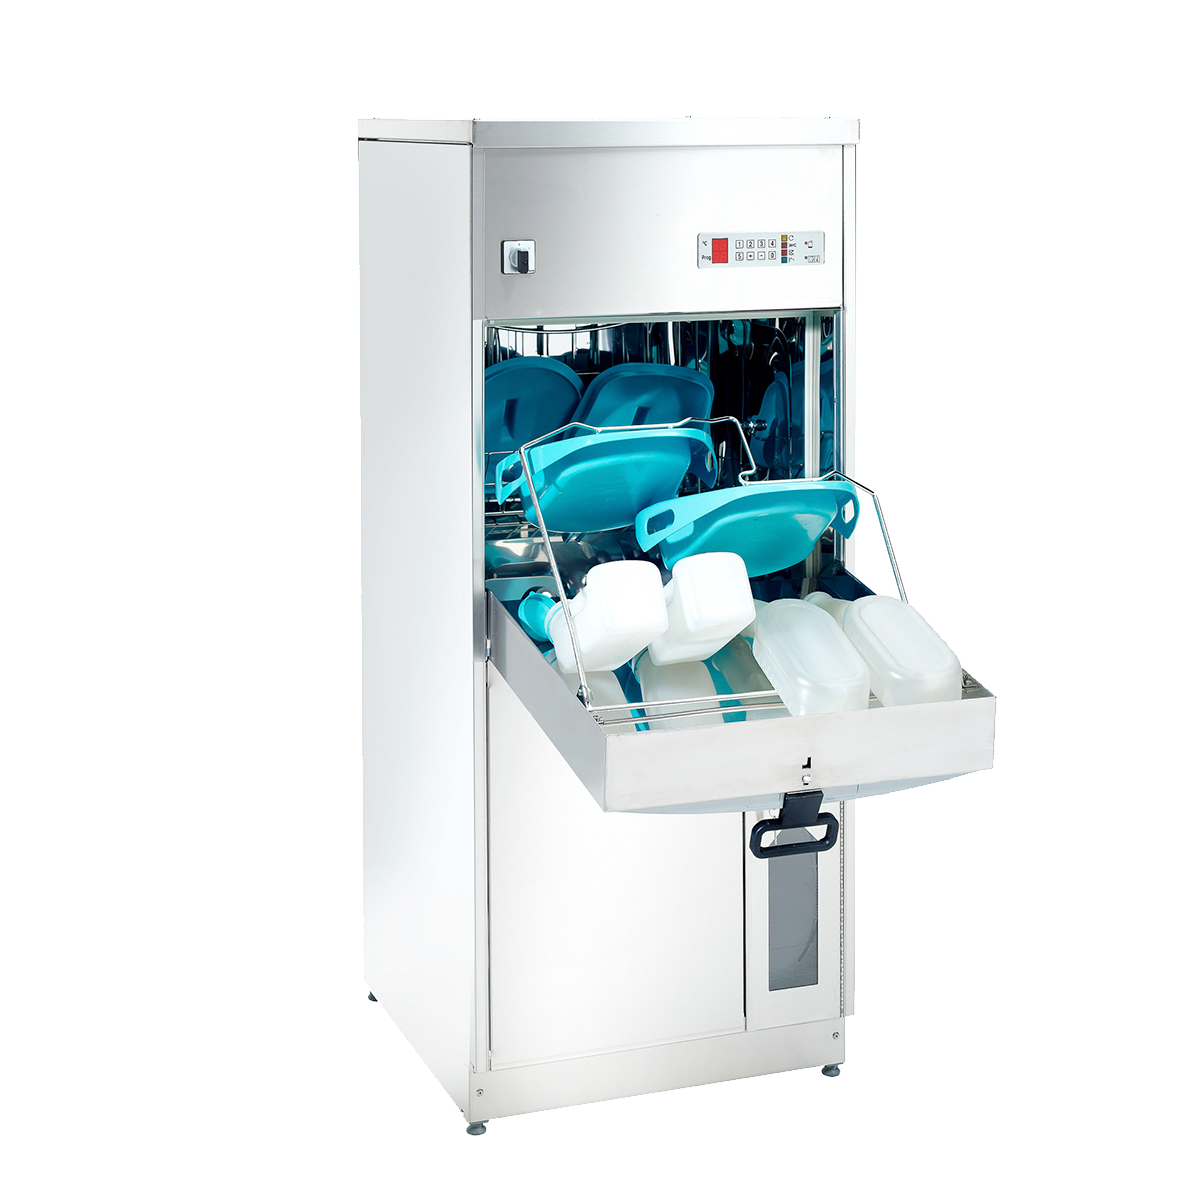 Medical washer disinfector